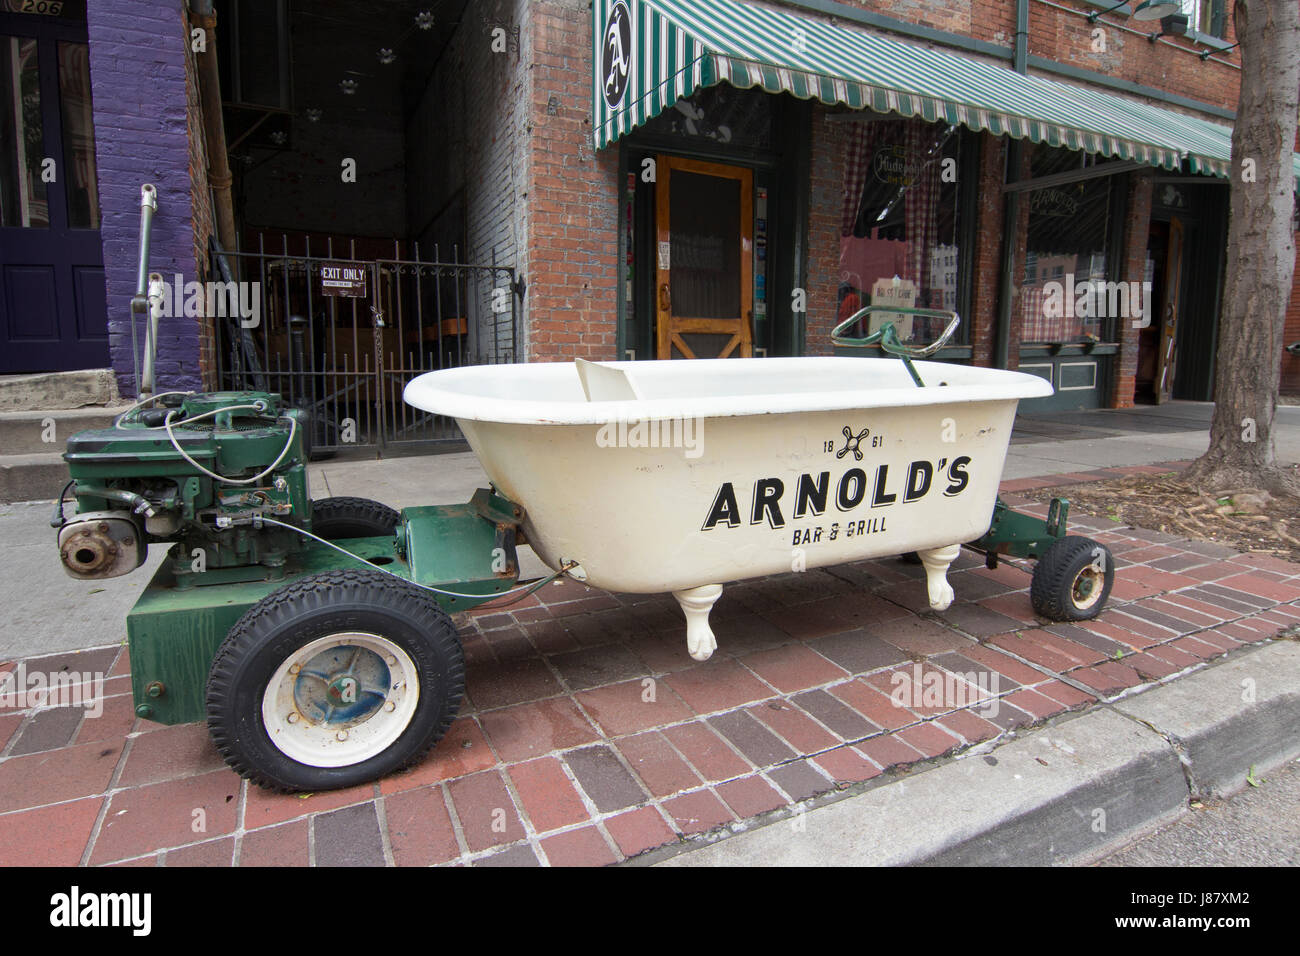 Image of Arnold\'s Bar with a bathtub out front that was used in ...